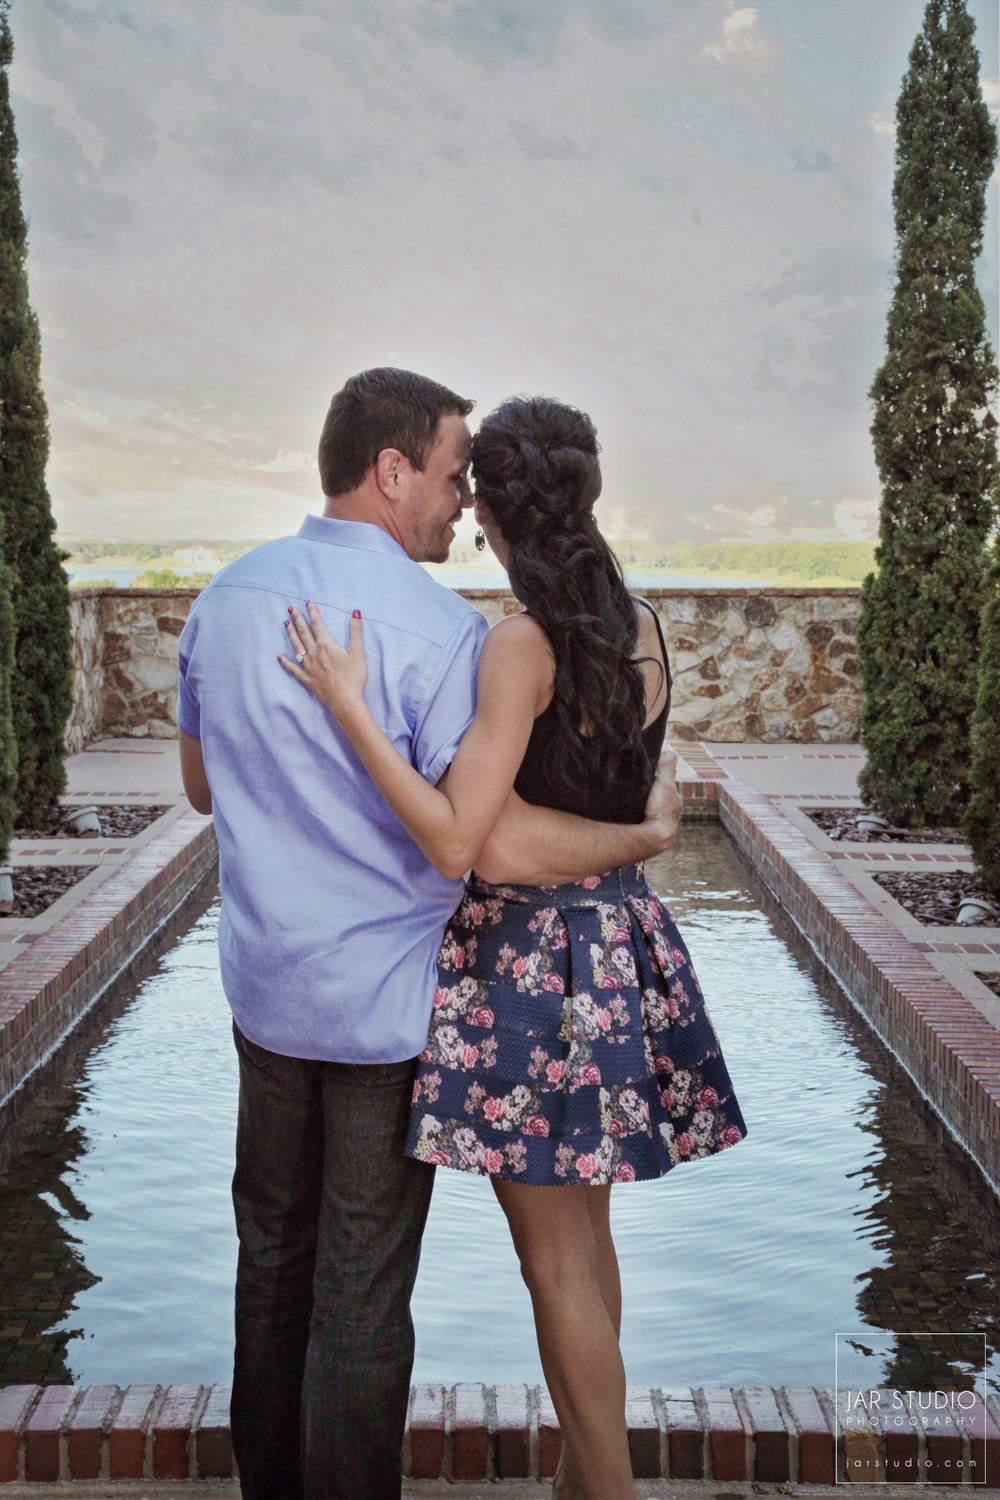 06-orlando-engagement-pictures-bella-collina-jarstudio.jpg